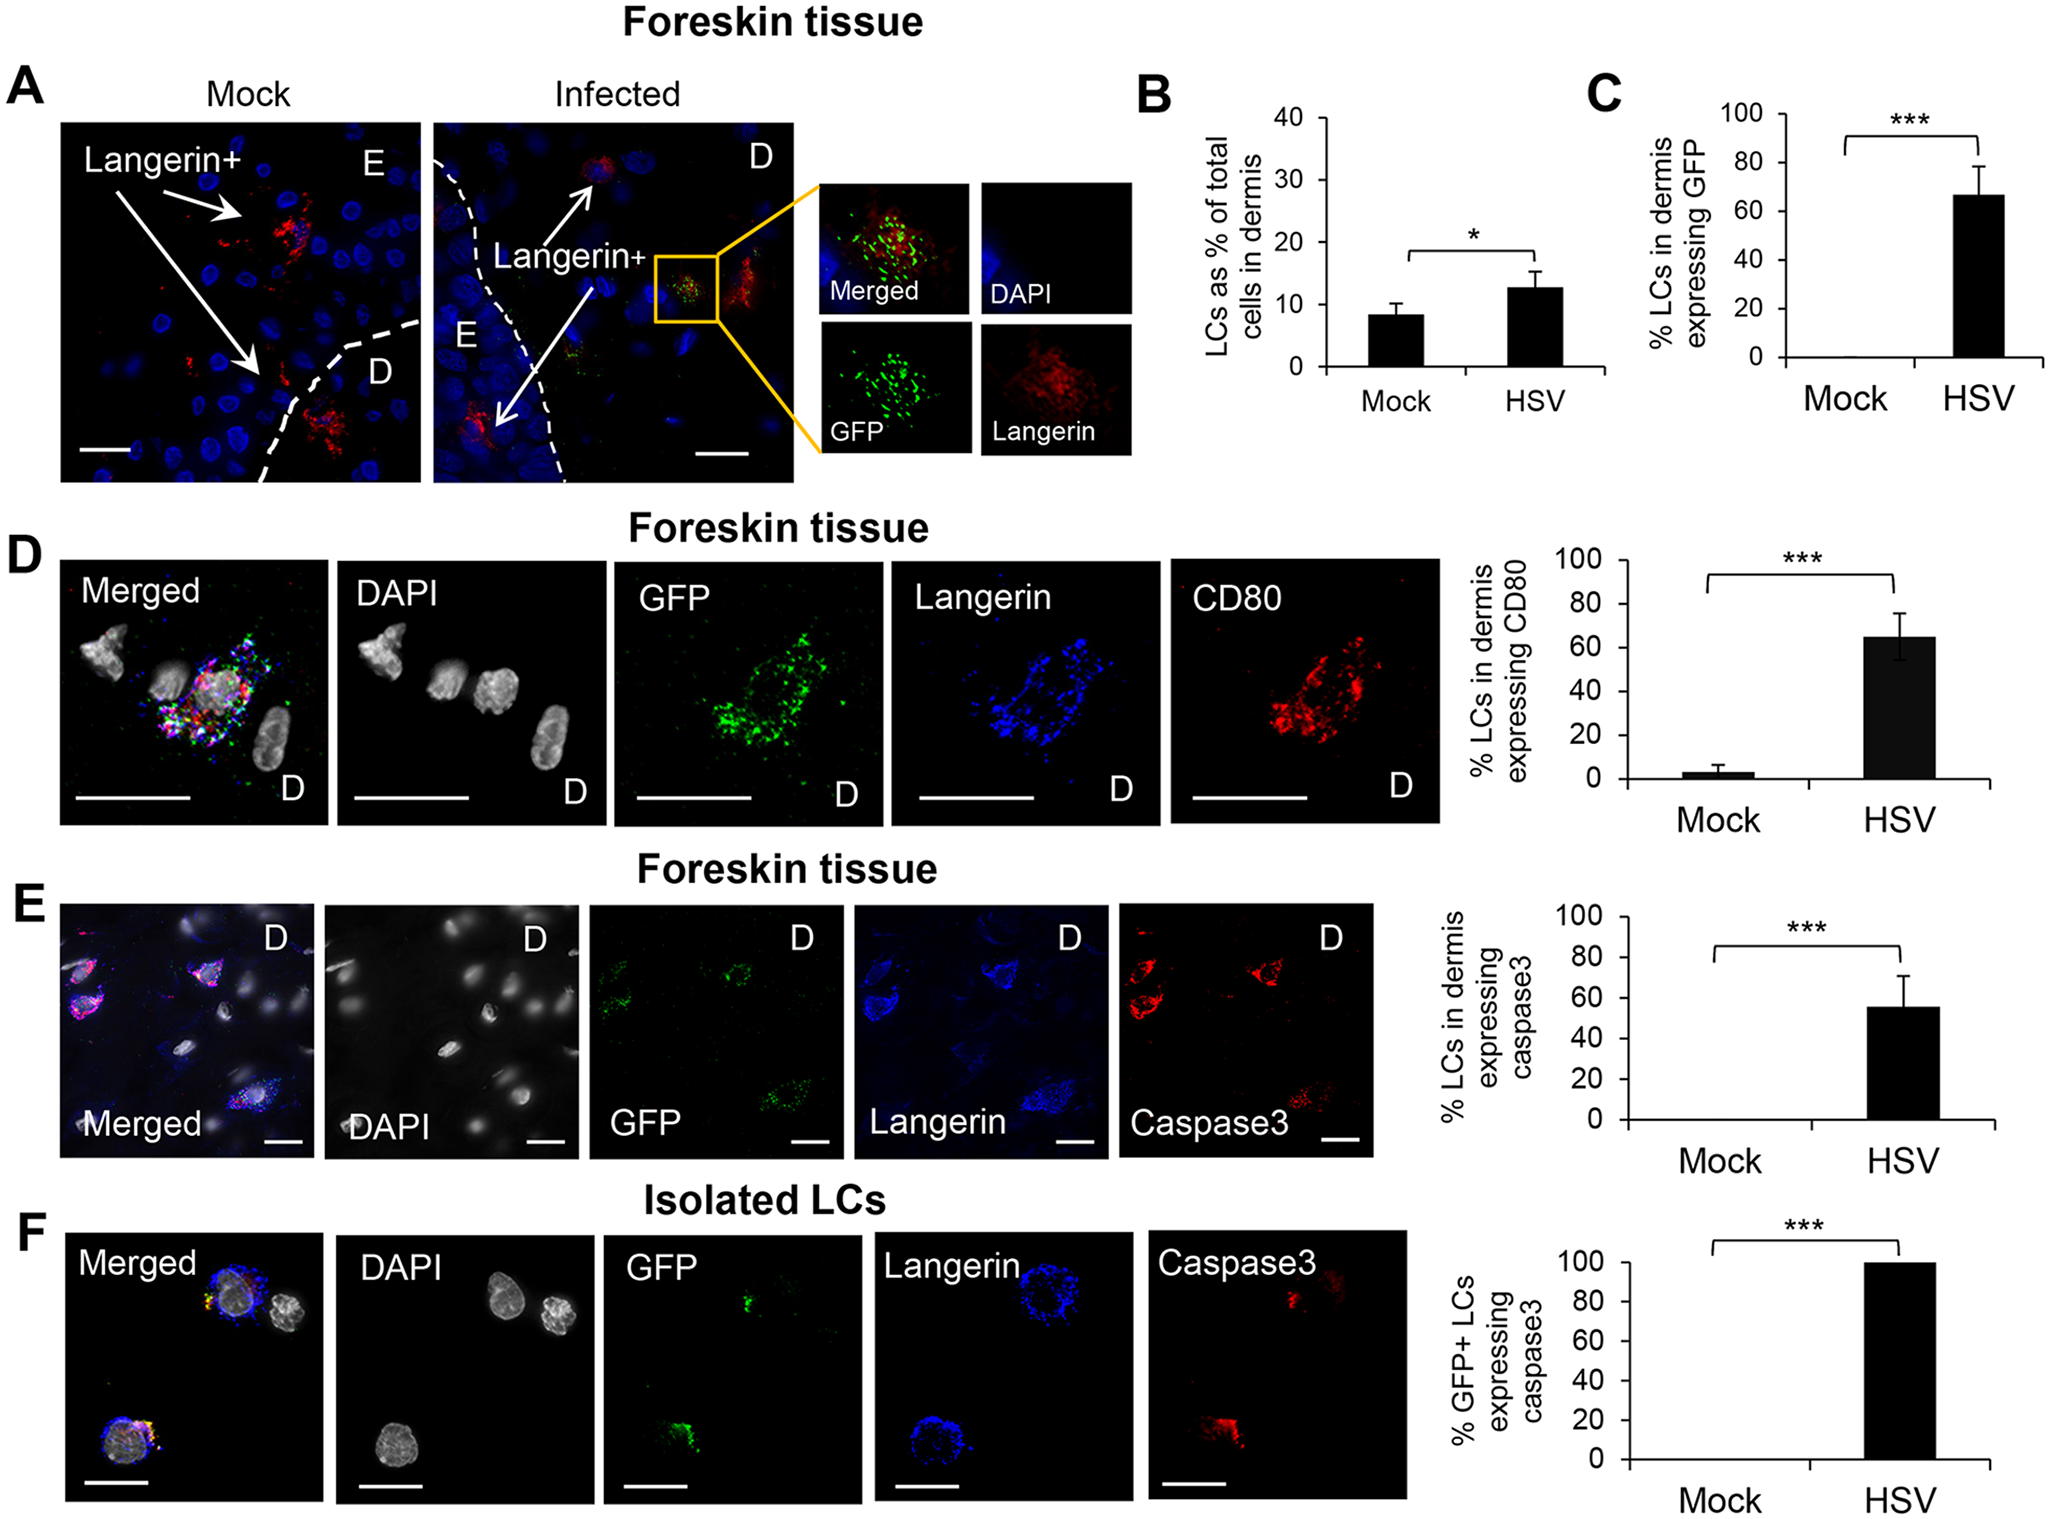 Fate of human LCs infected with HSV-1.